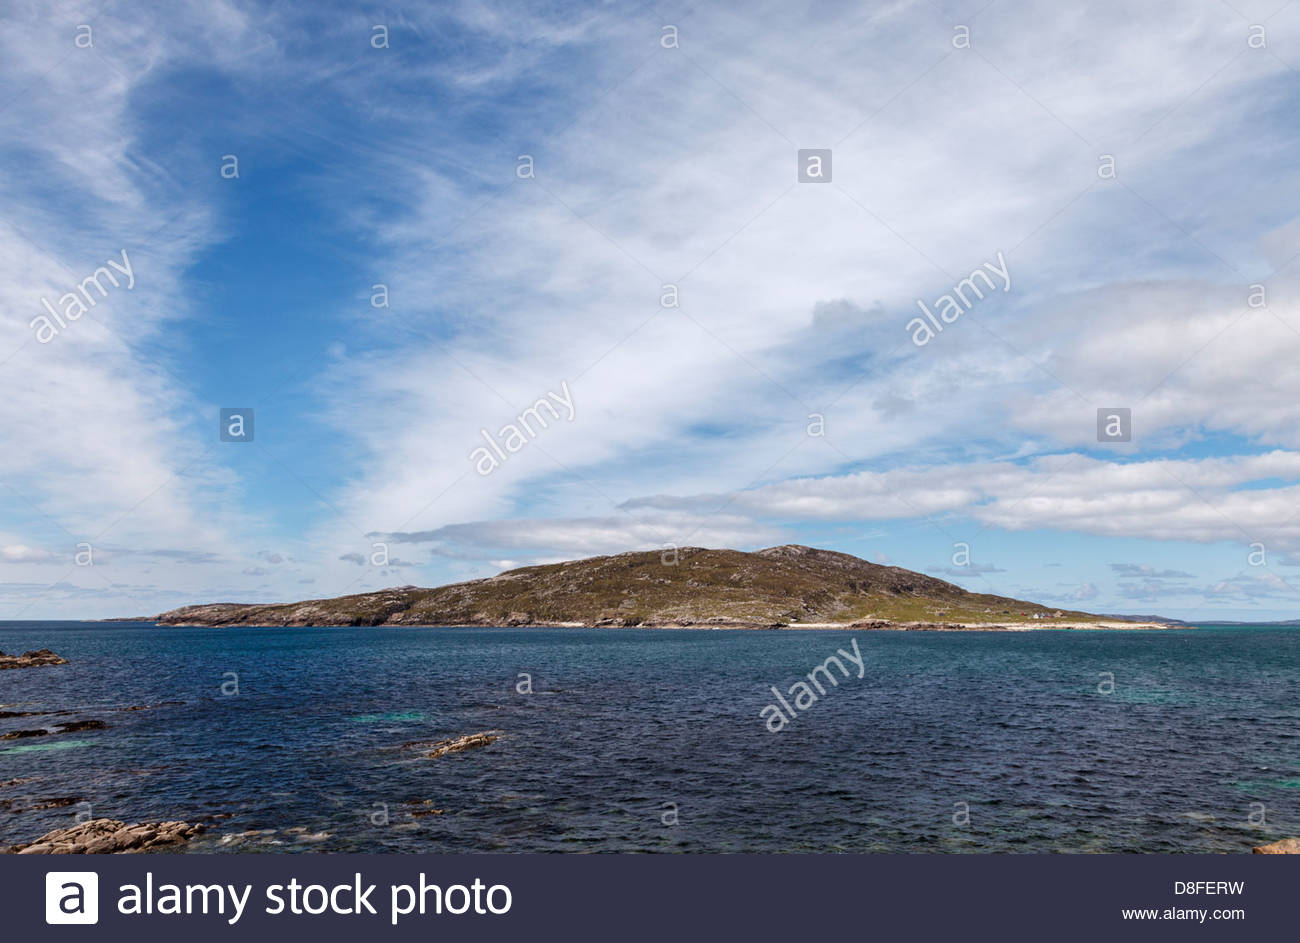 Isle of Scarp seen from Huisinish, Outer Hebrides, Scotland - Stock Image